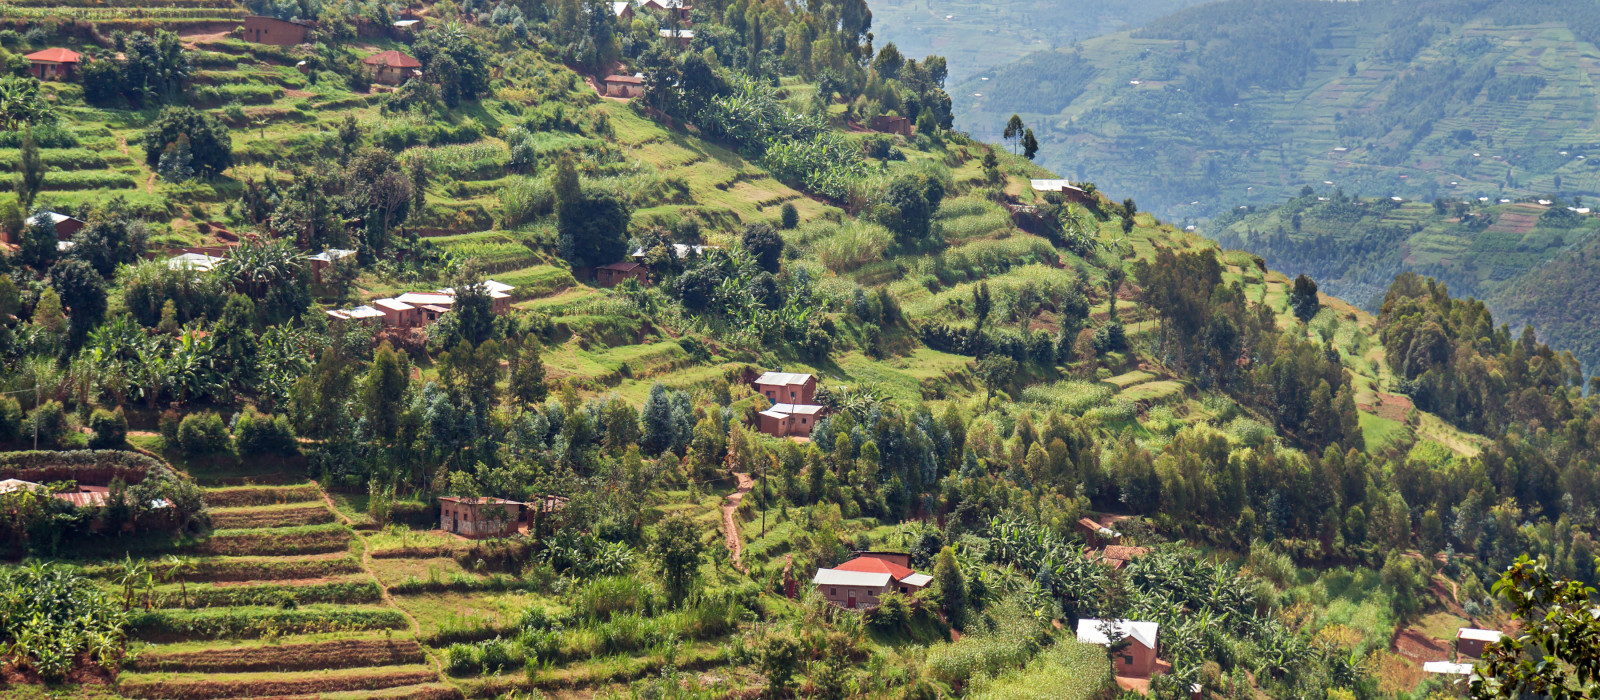 A steep hill in the Muvumba river valley in Rwanda, Africa